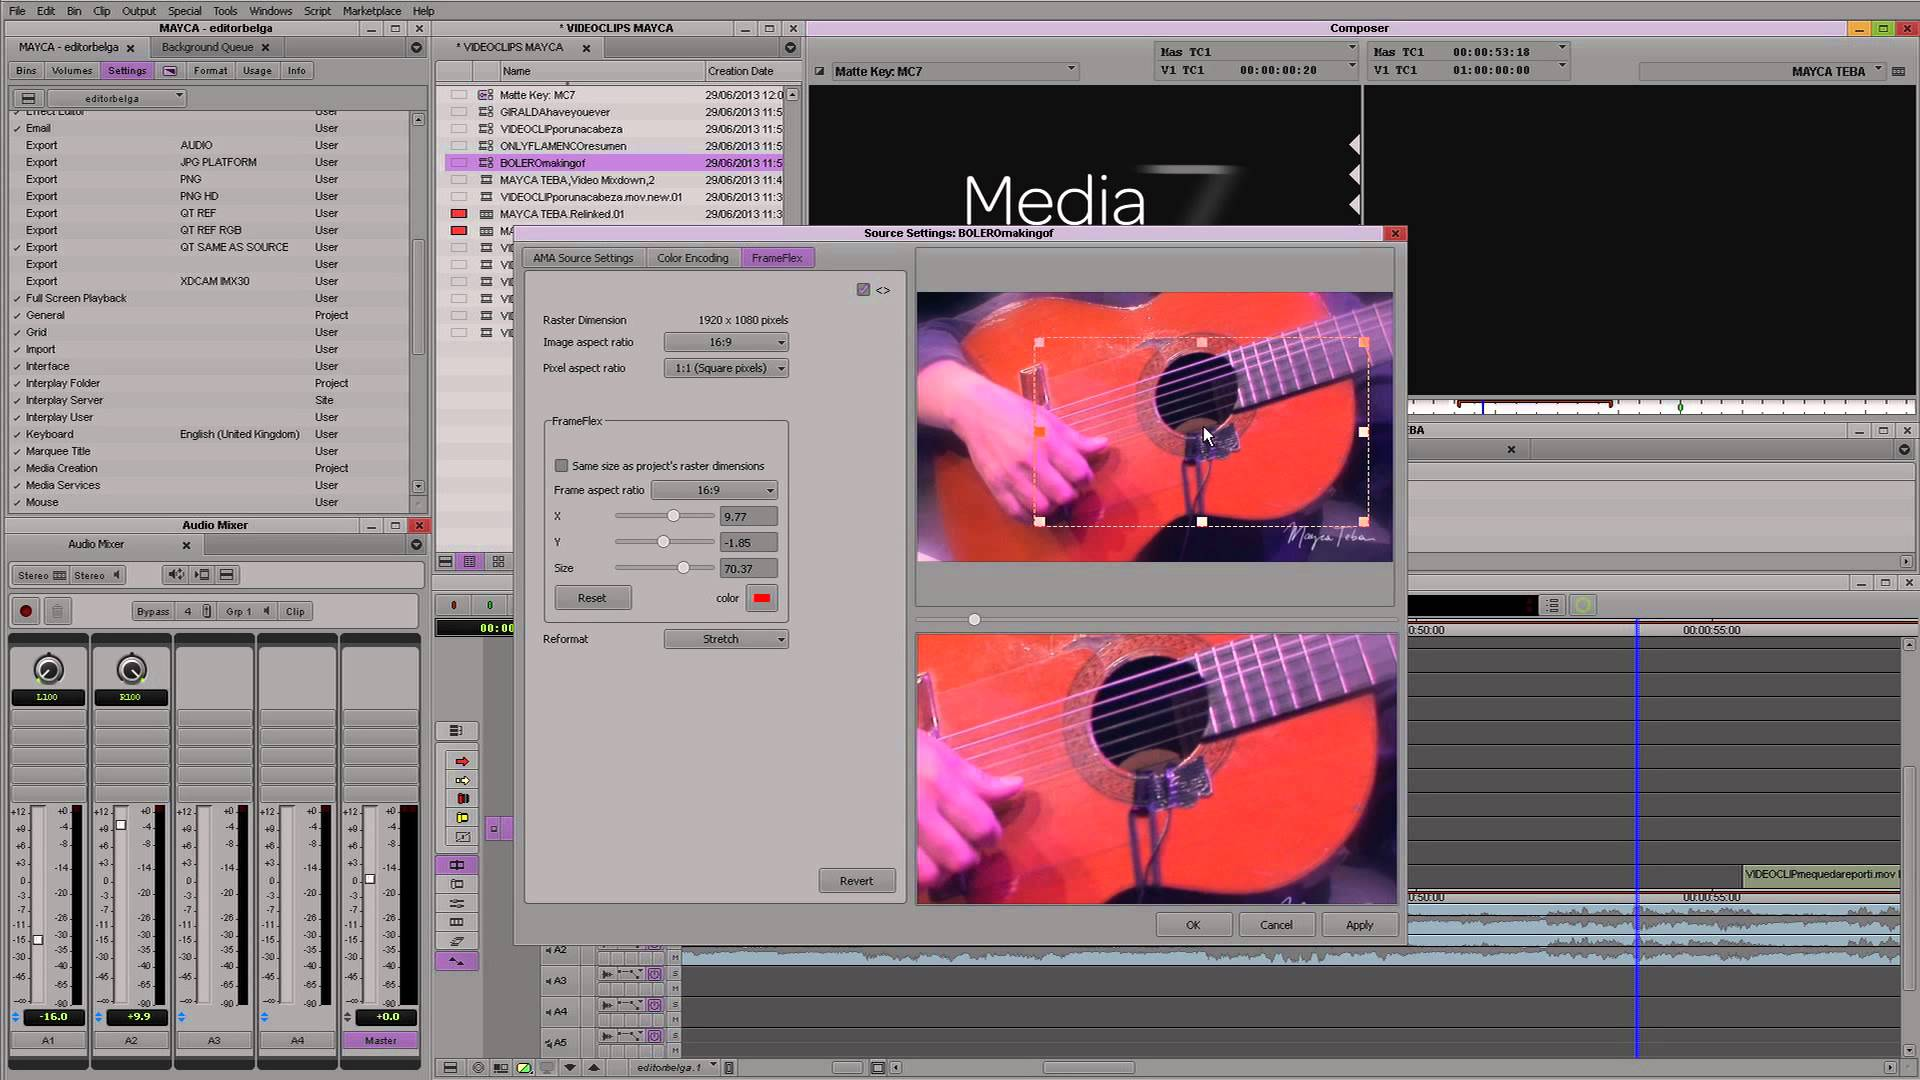 Top 10 Changes to Media Composer 7: Background Trancode/Consolidate